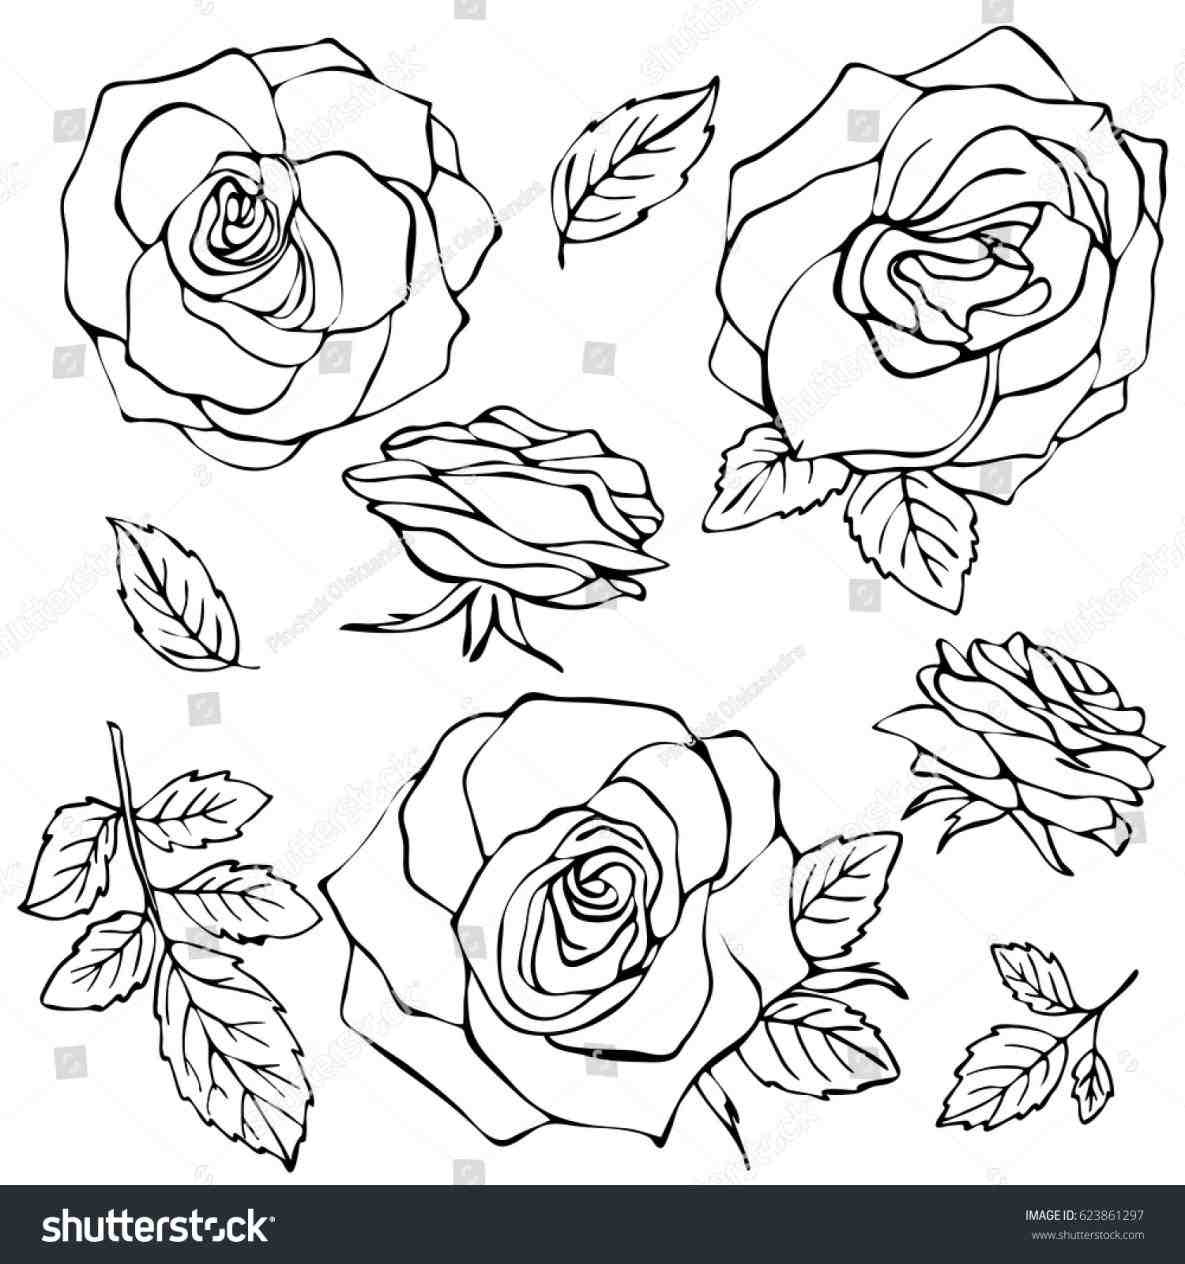 1185x1264 Rose Flower Hd Photos Gallery Clip Art Library Simple Pencil Drawn